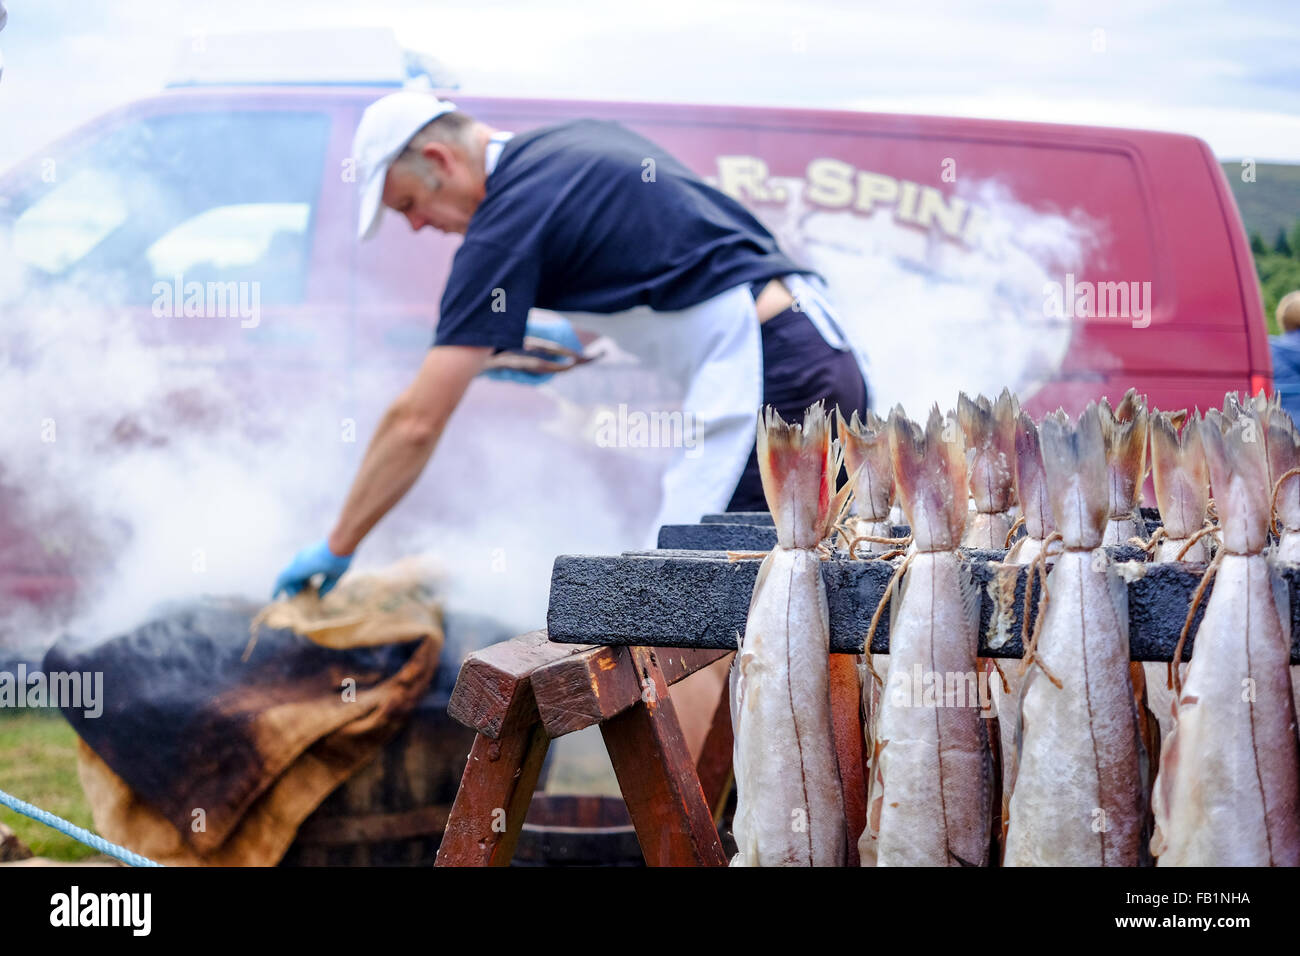 Ian R. Spink cooking Arbroath Smokies at the Moy Highland Games in Scotland. - Stock Image